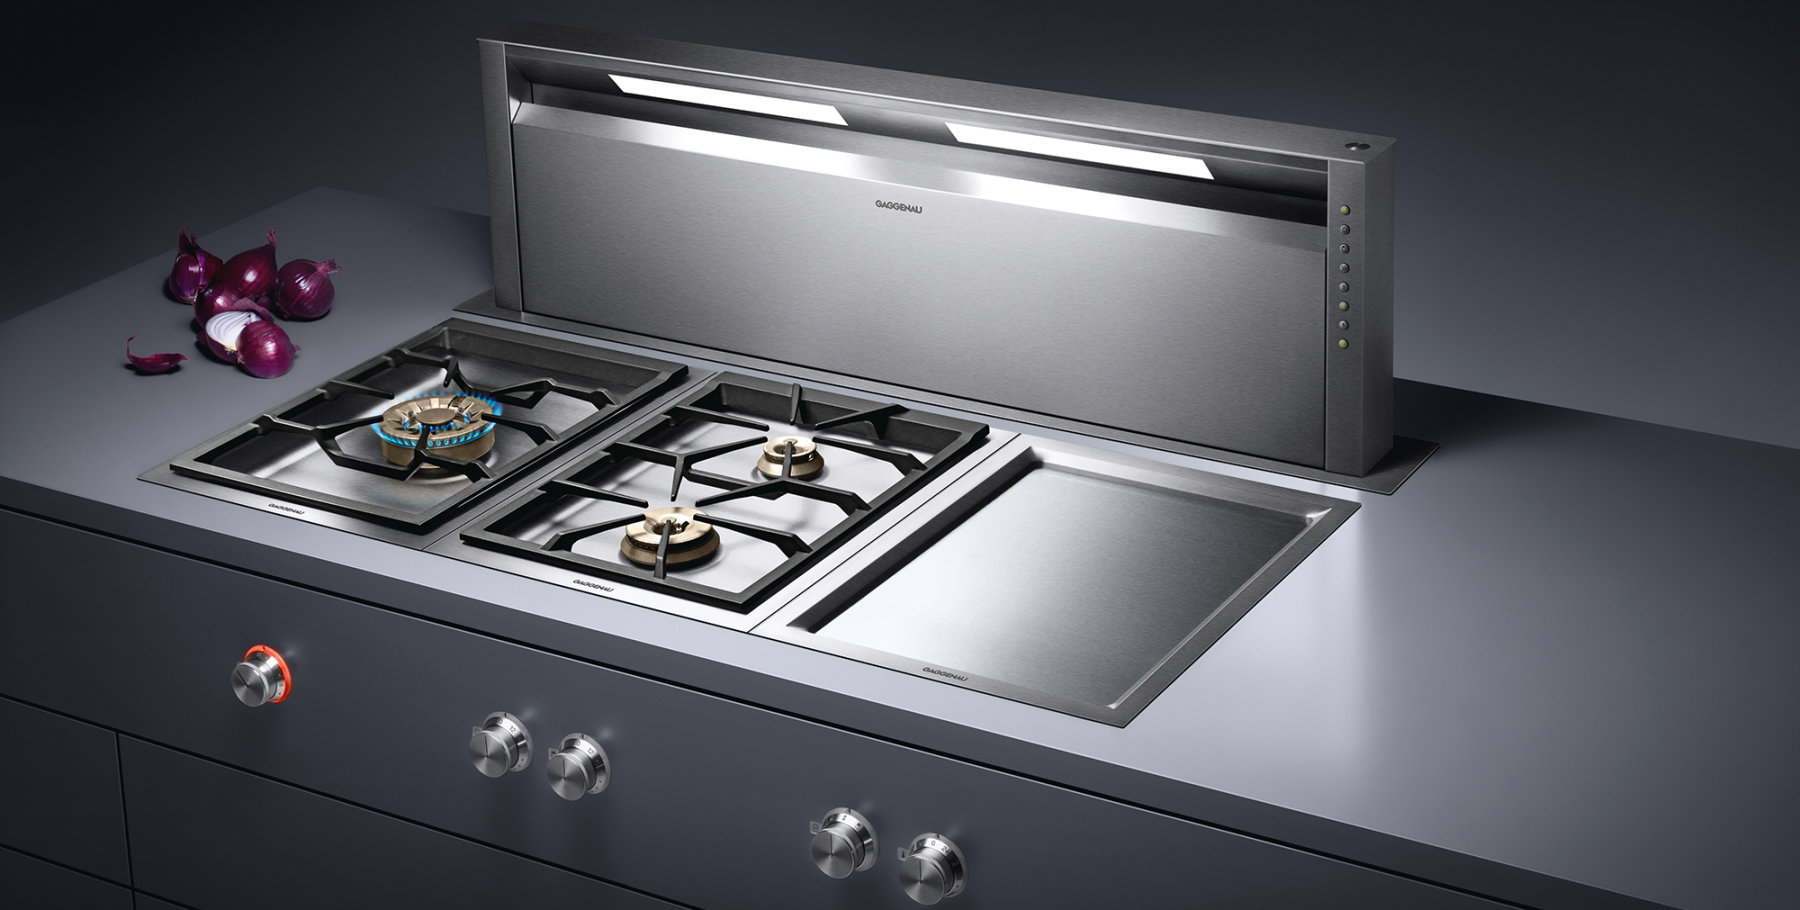 how much does a gaggenau cooktop cost?